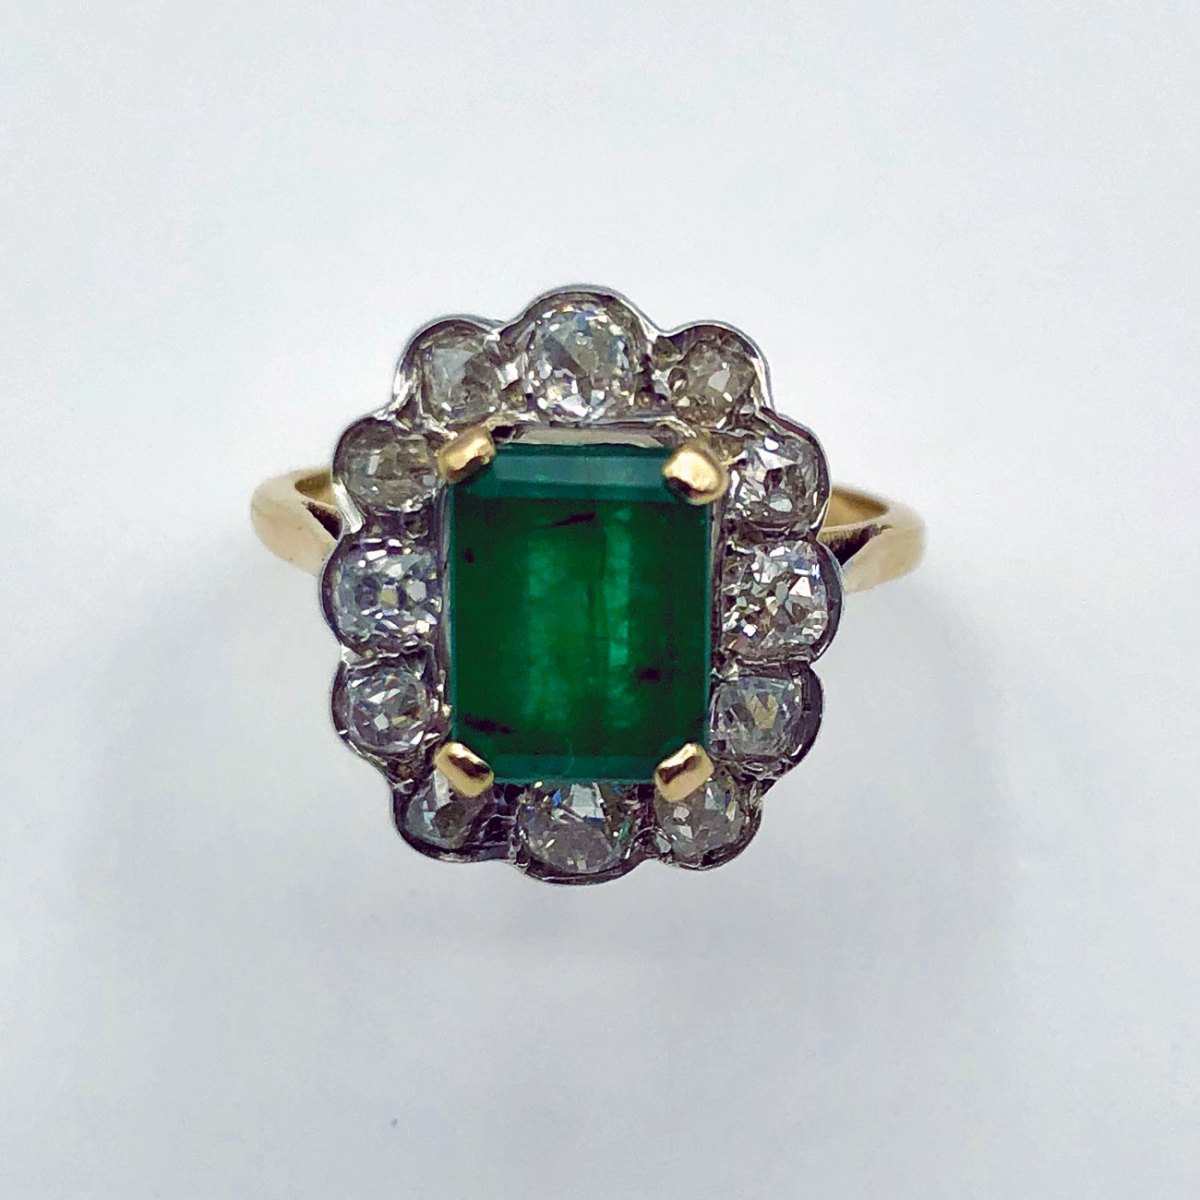 Antique Emerald and Diamonds ring, 1.52ct emerald, 1.30ct old cut diamonds, 18K yellow gold, ref BA-B17453, size 53 adjustable. | EVENOR Vintage Jewelry